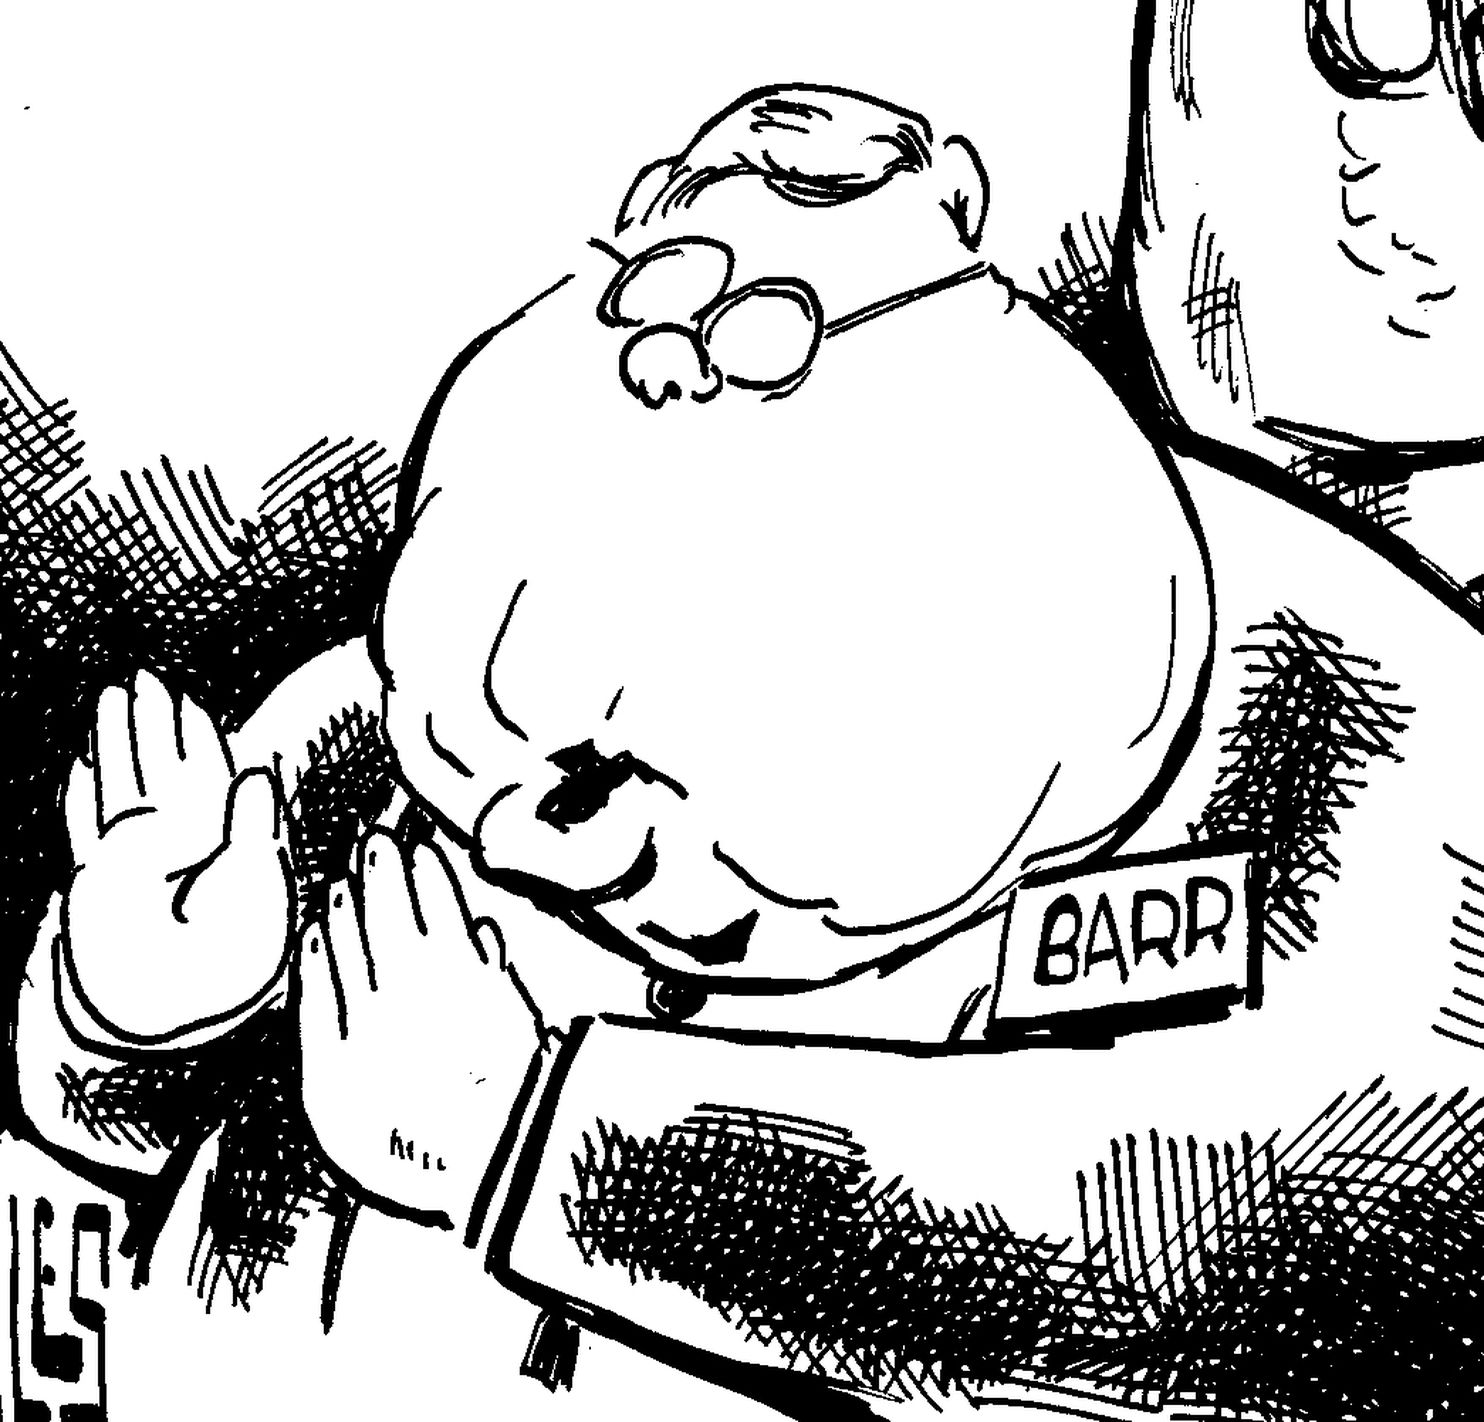 William Barr Displays The Extent Of His Independence